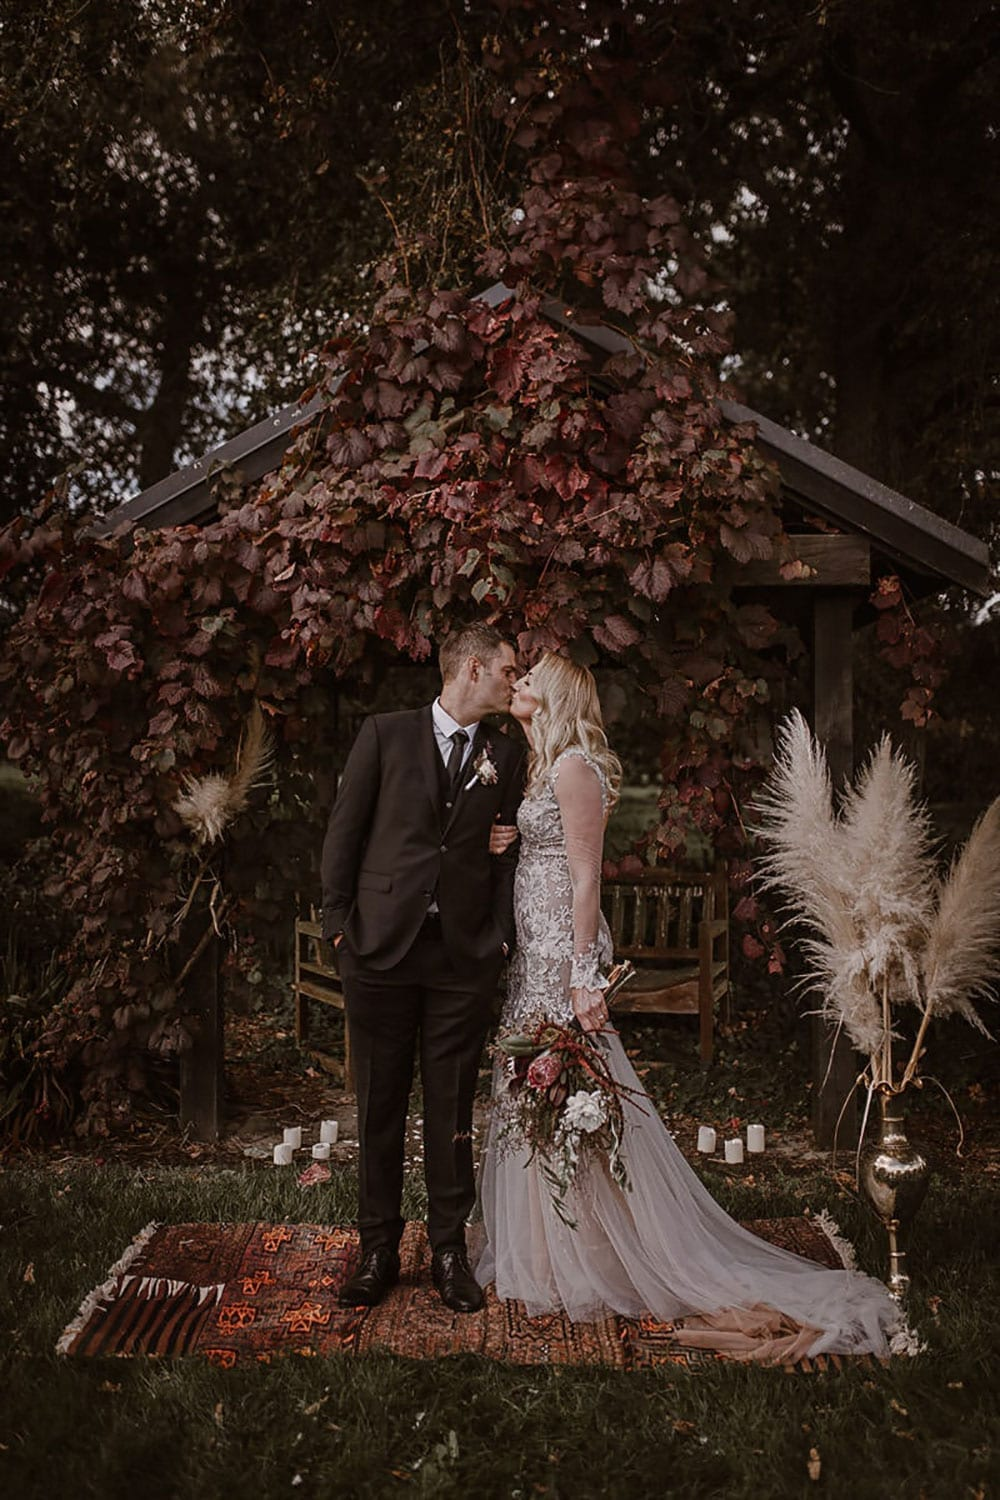 Real Weddings | Vinka Design | Real Brides Wearing Vinka Gowns | Rikki-Lee and Adam kiss under fall leaves with Rikki-Lee in stunning bespoke wedding gown with beautiful lace detail long sheer sleeves with cuff detail and floaty chiffon layers at bottom of dress